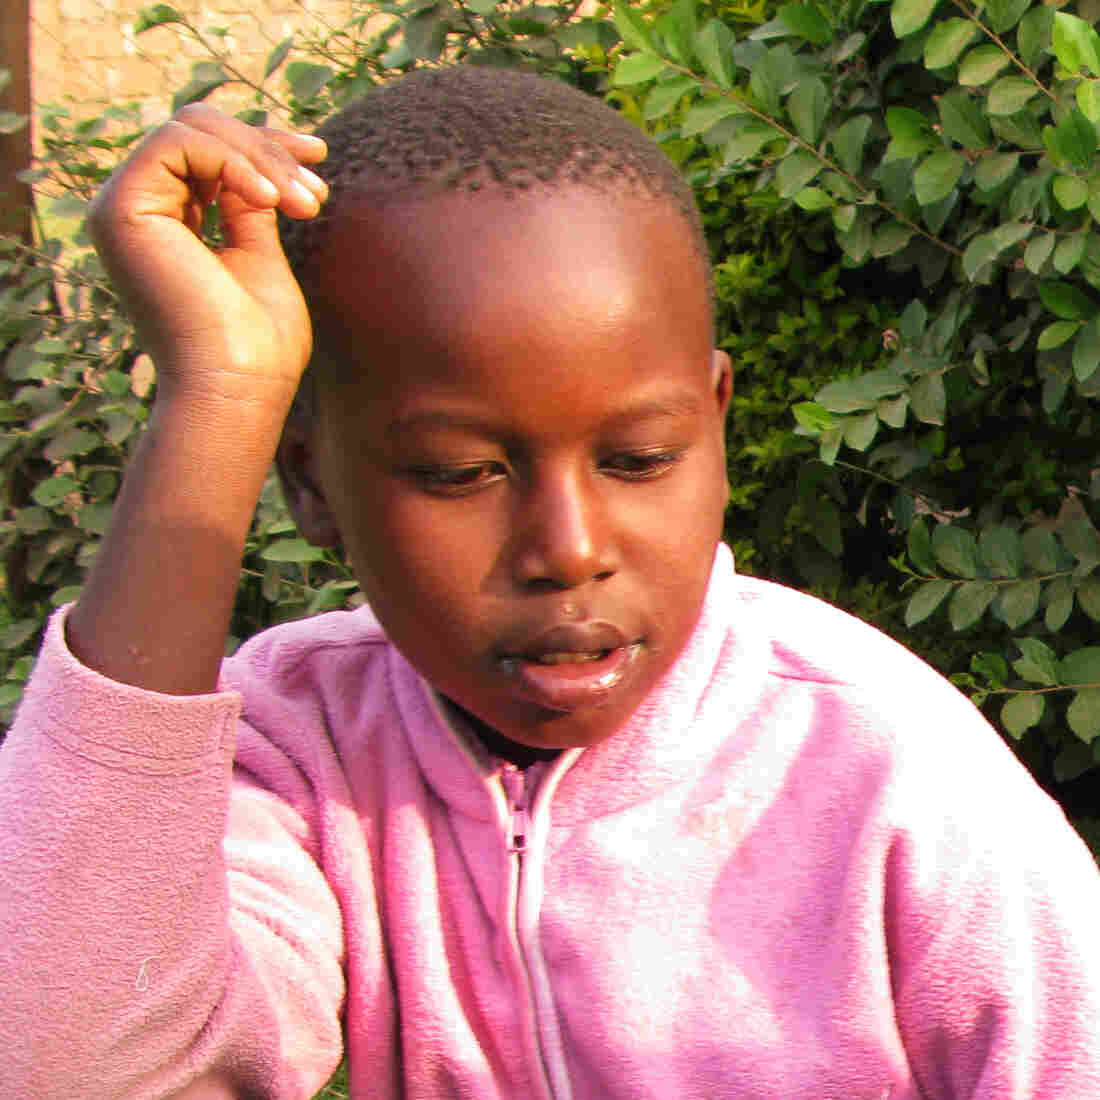 Kenya's Youngest 'Outcasts' Emerge From Shadows